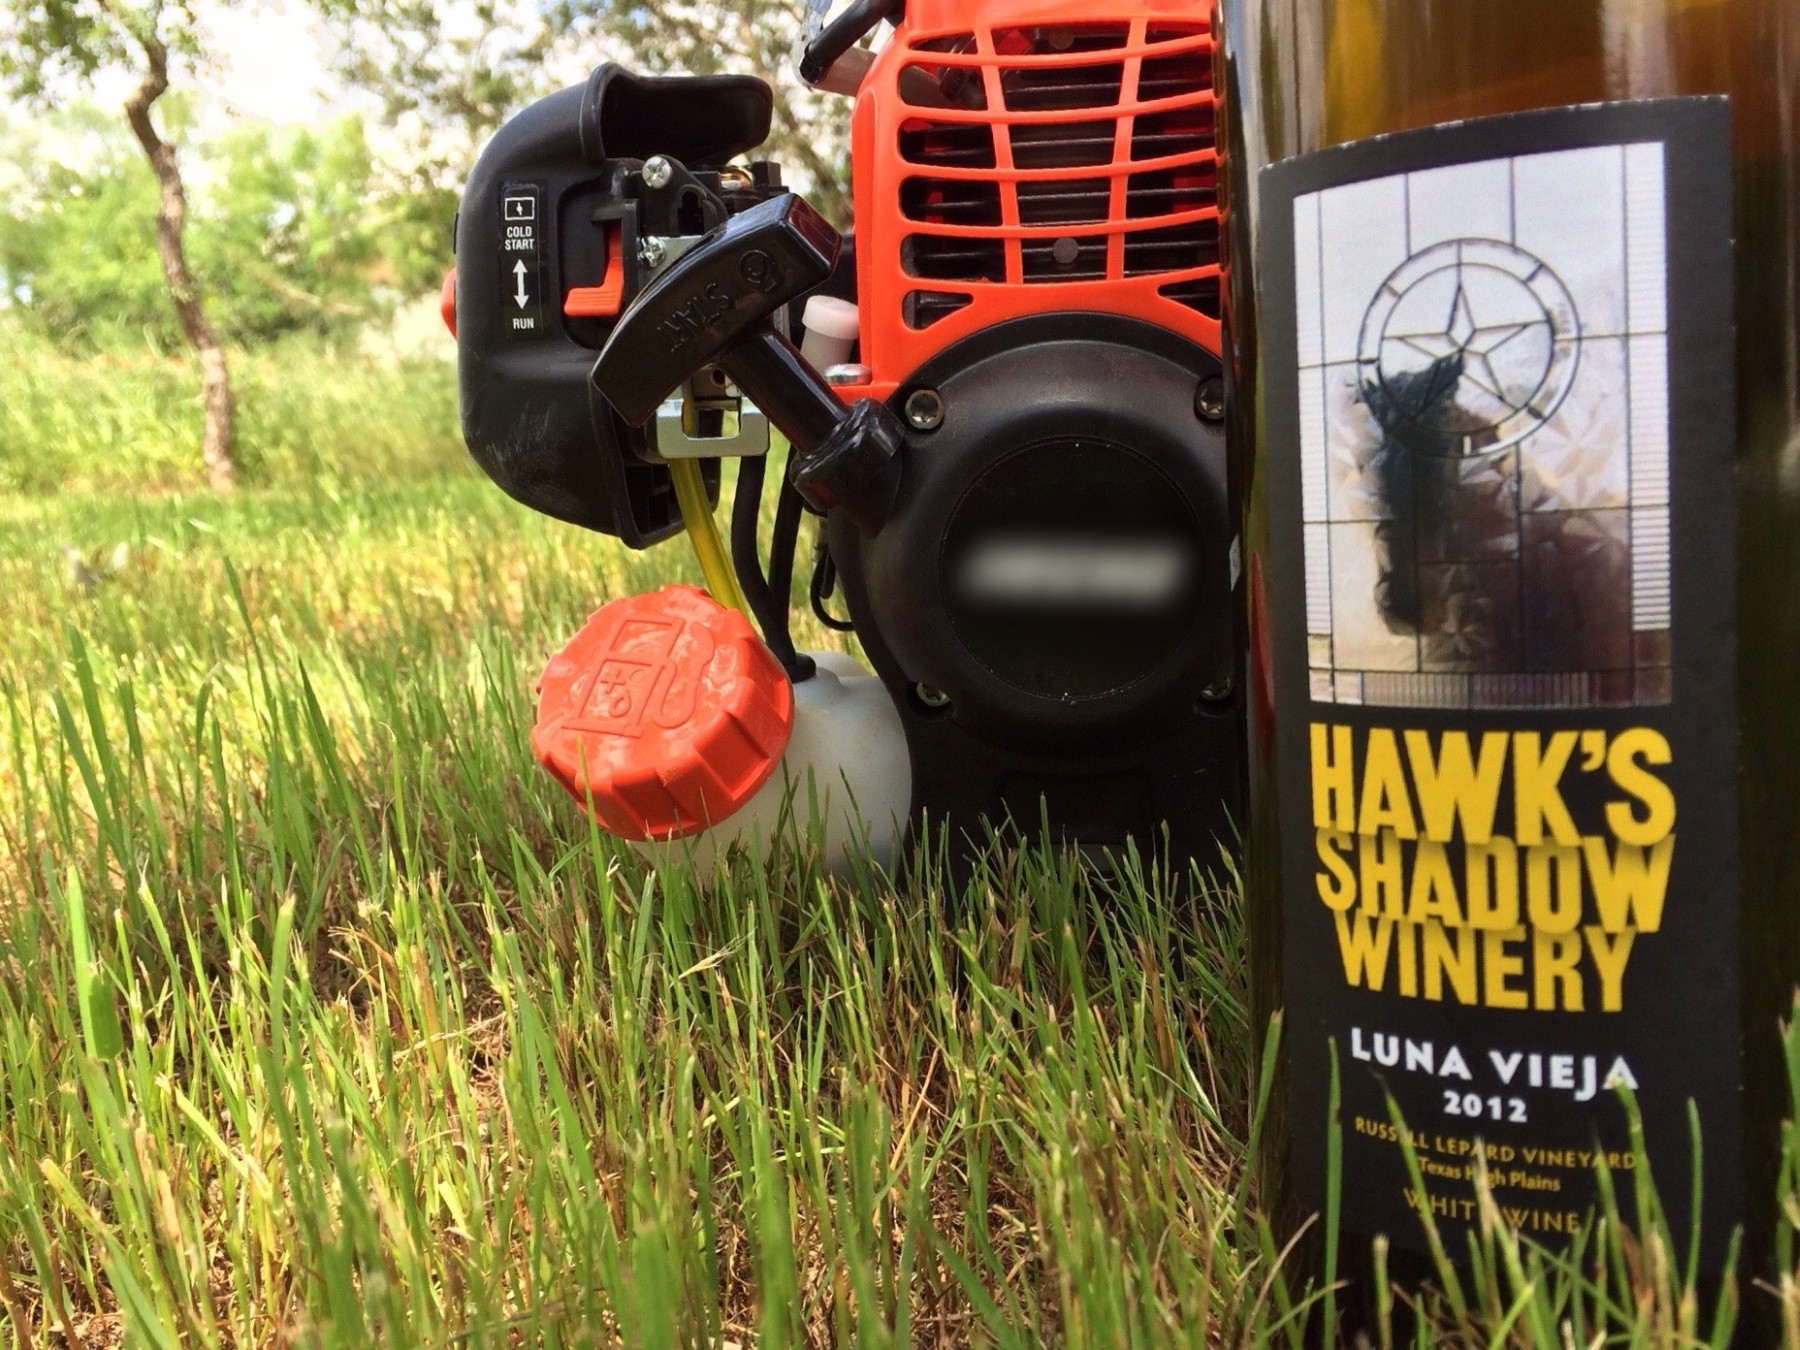 Hawk's Shadow Winery Luna Vieja featured